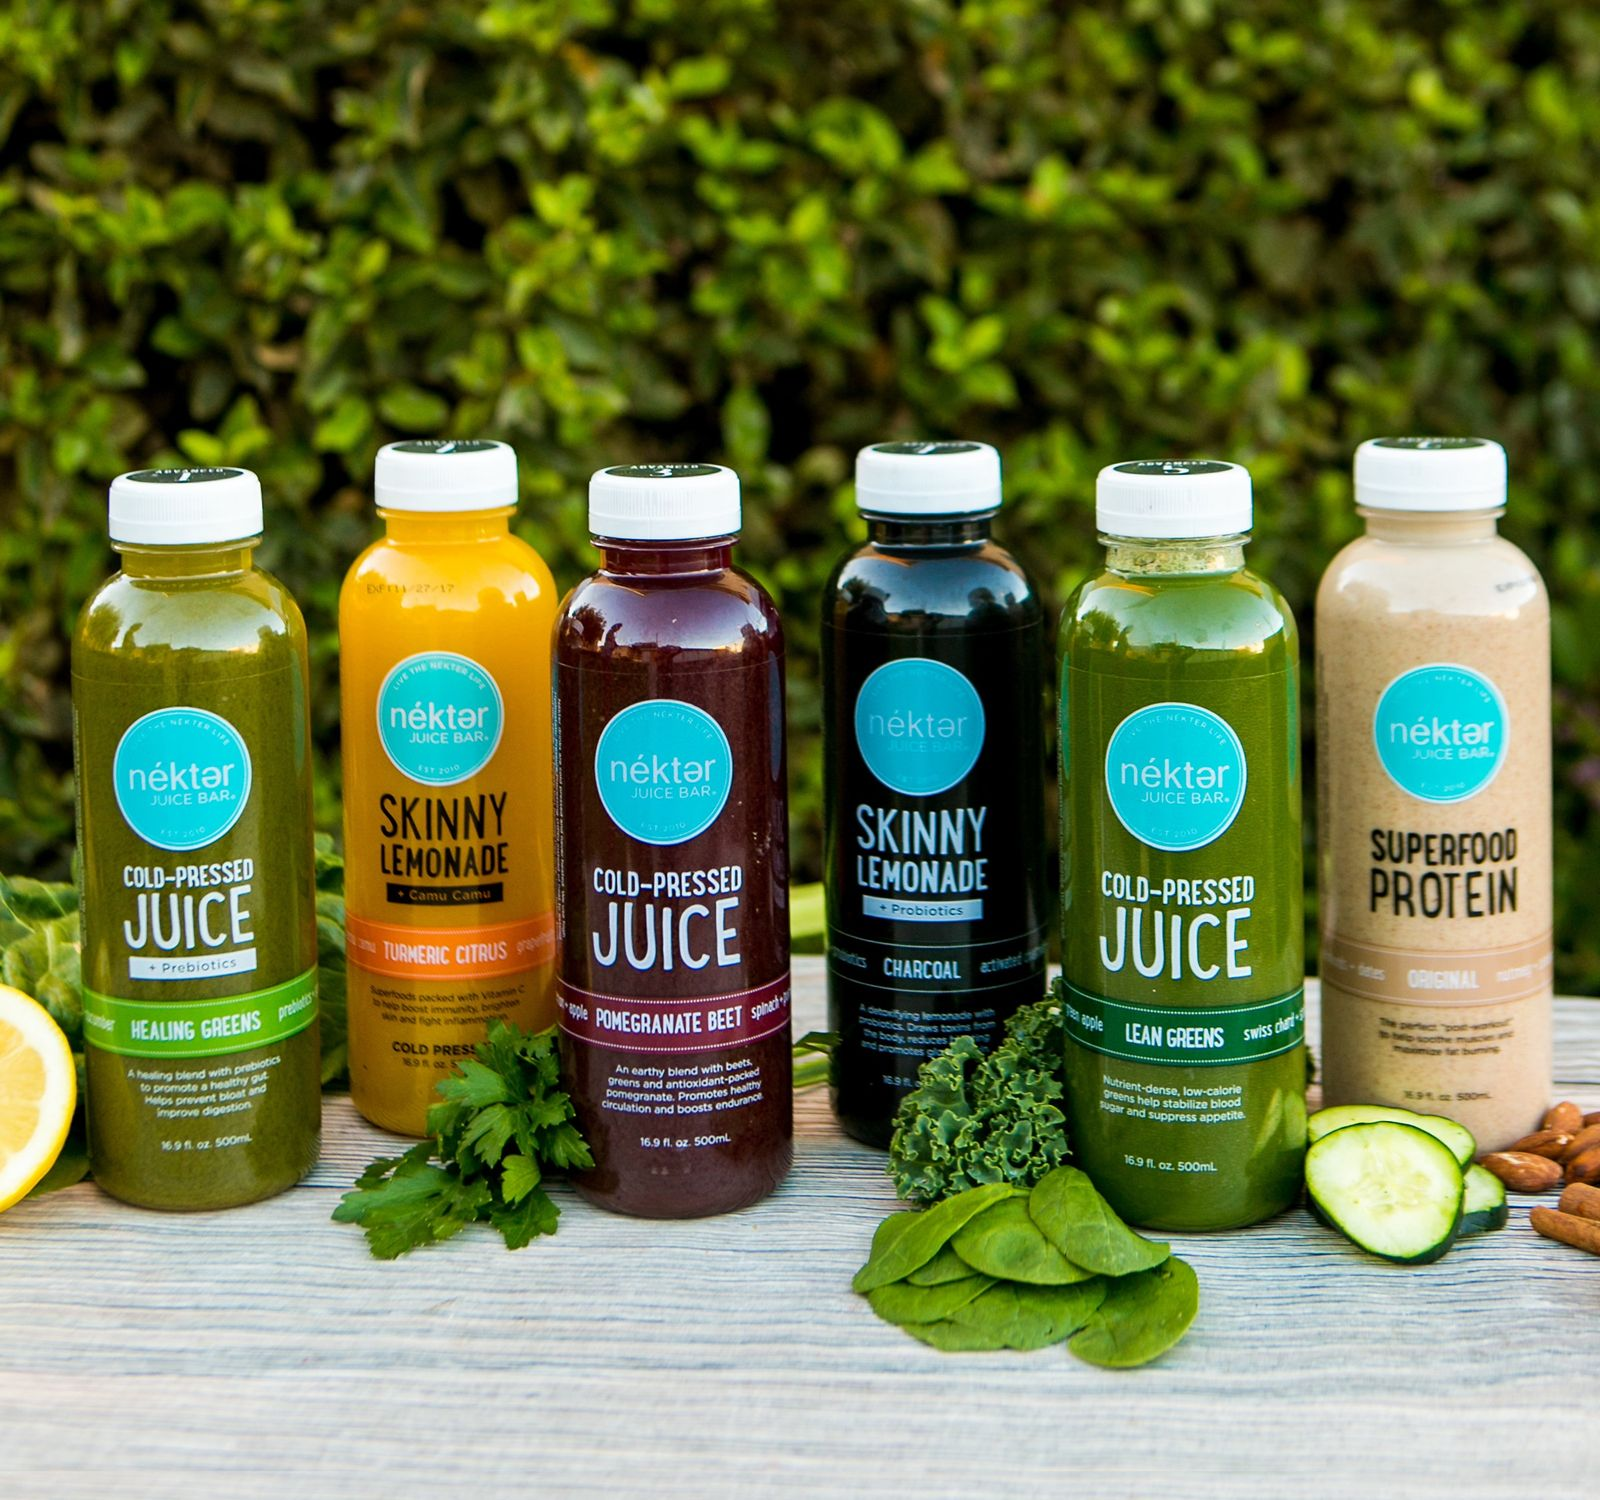 Nektar juice cleanse / Painters restaurant cornwall ny